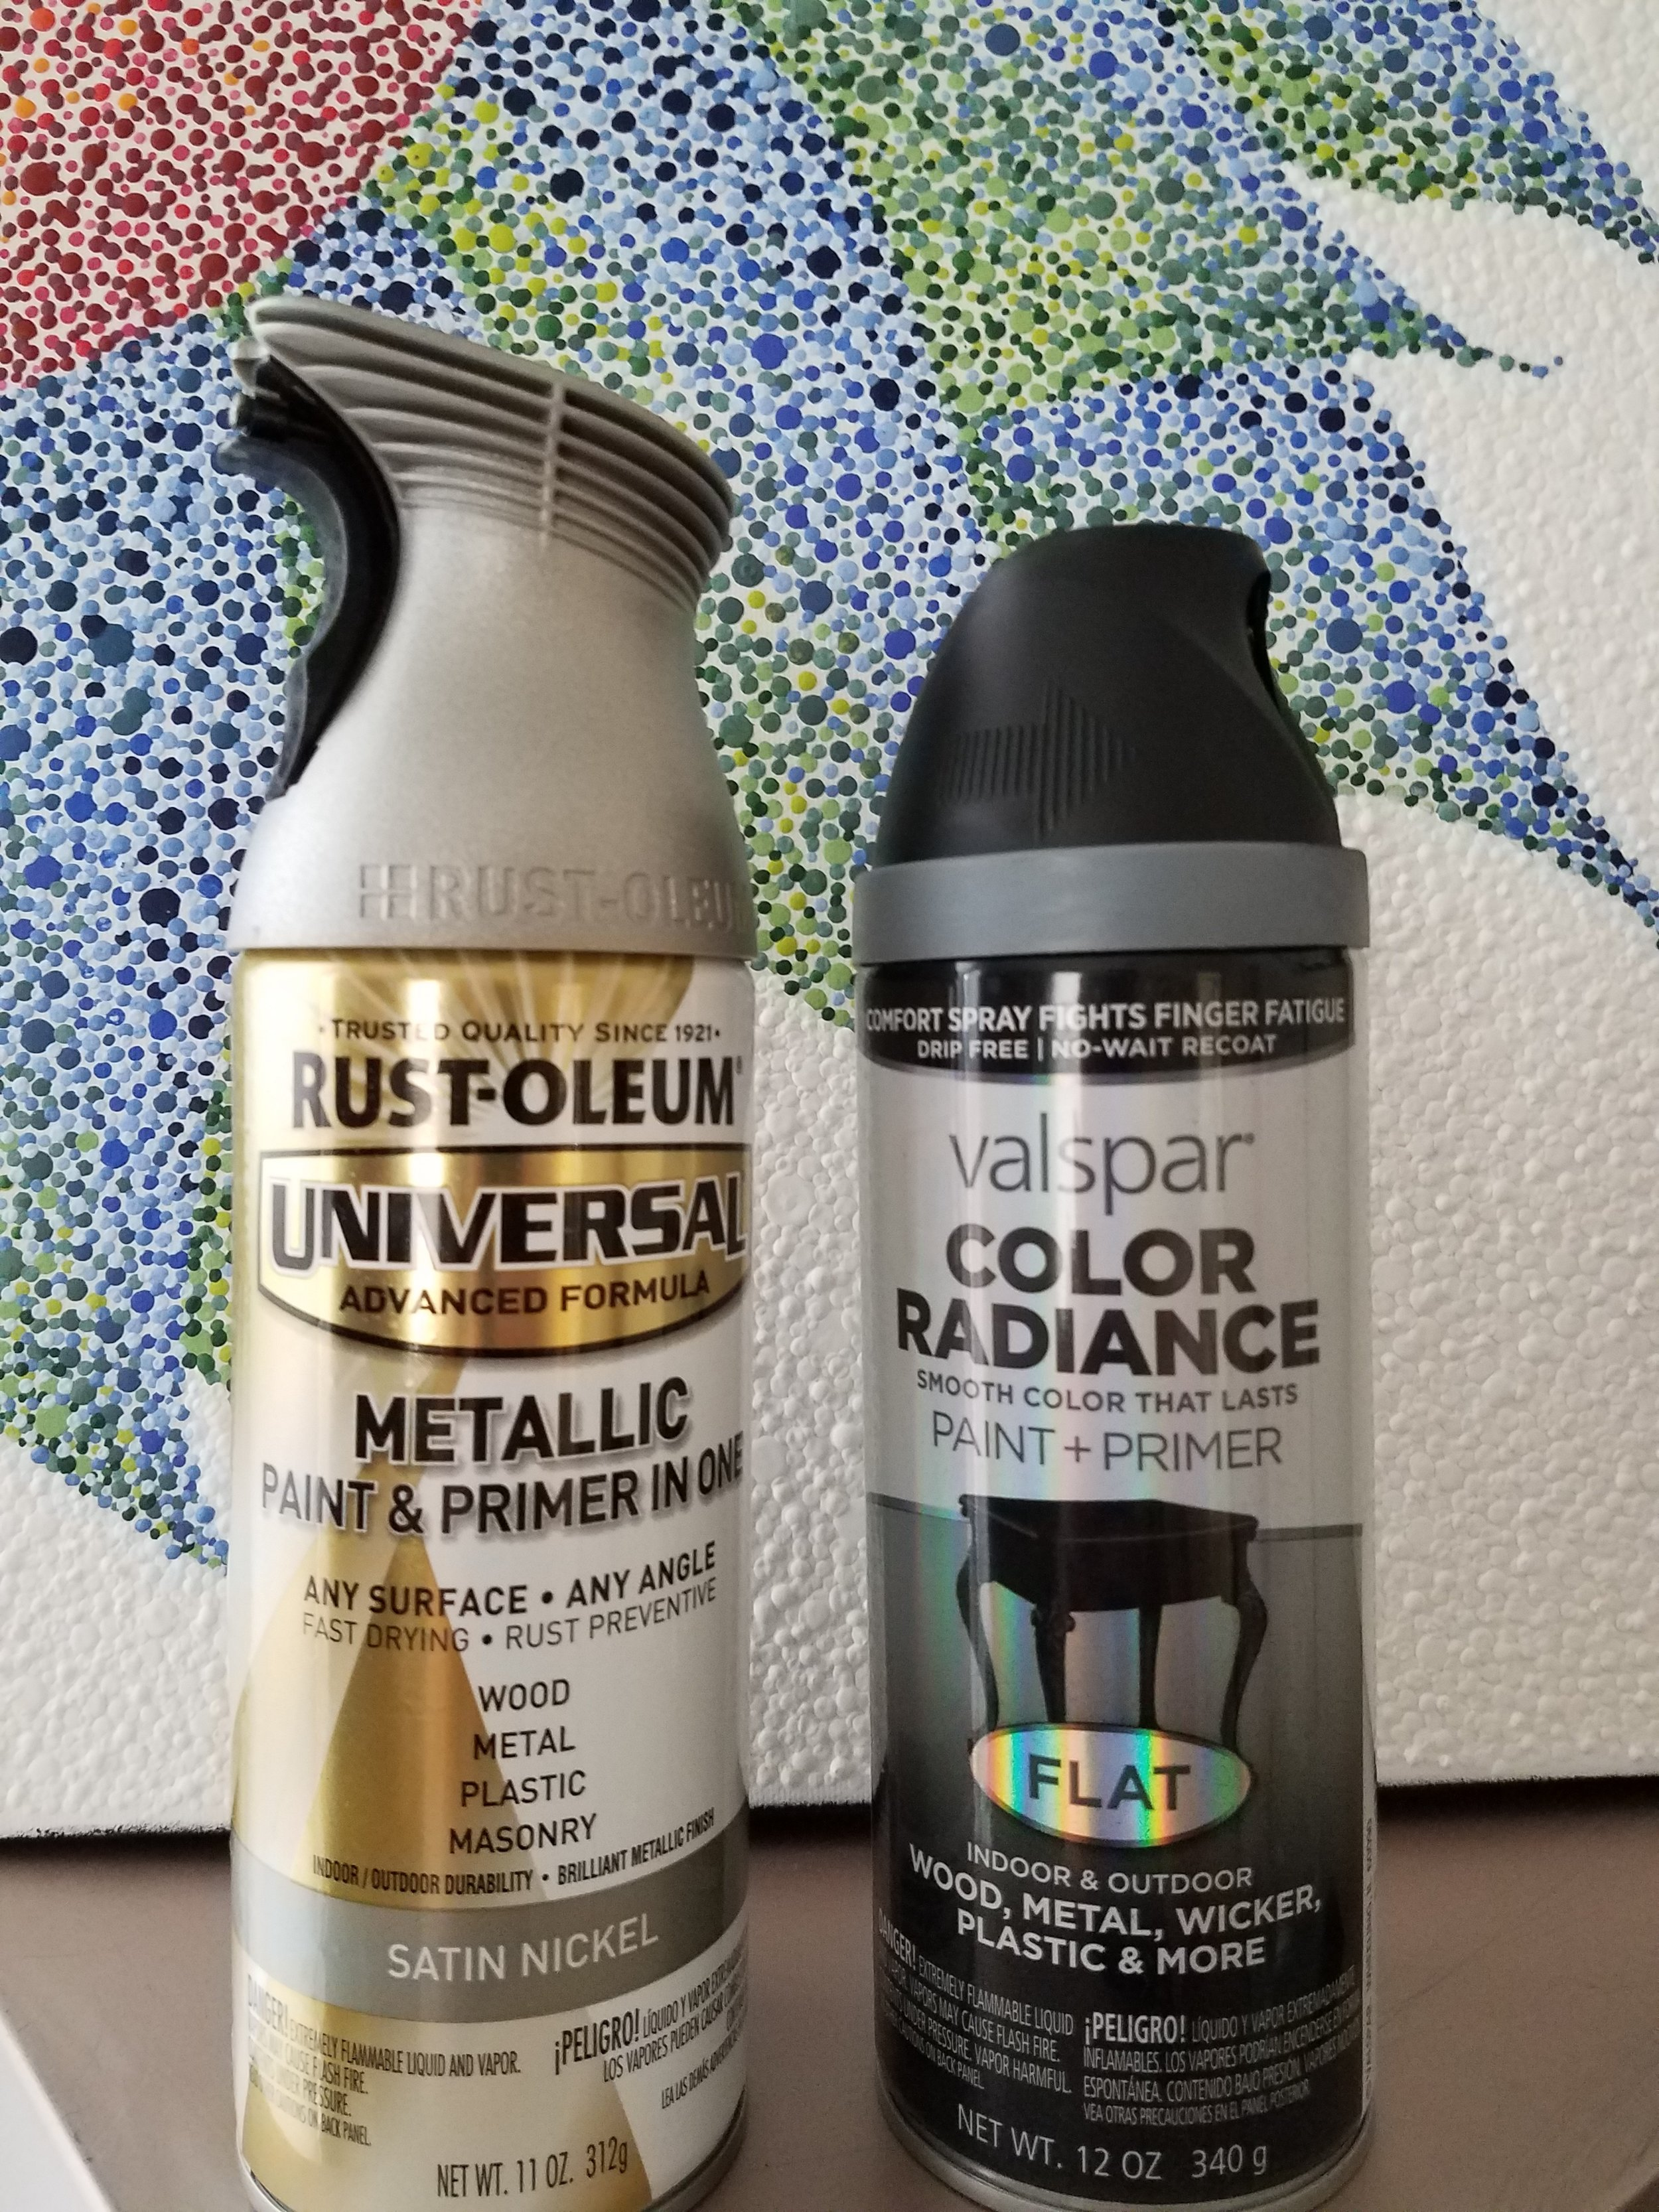 How To Makeover Your Ceiling Fan DIY: Spray Paint Cans